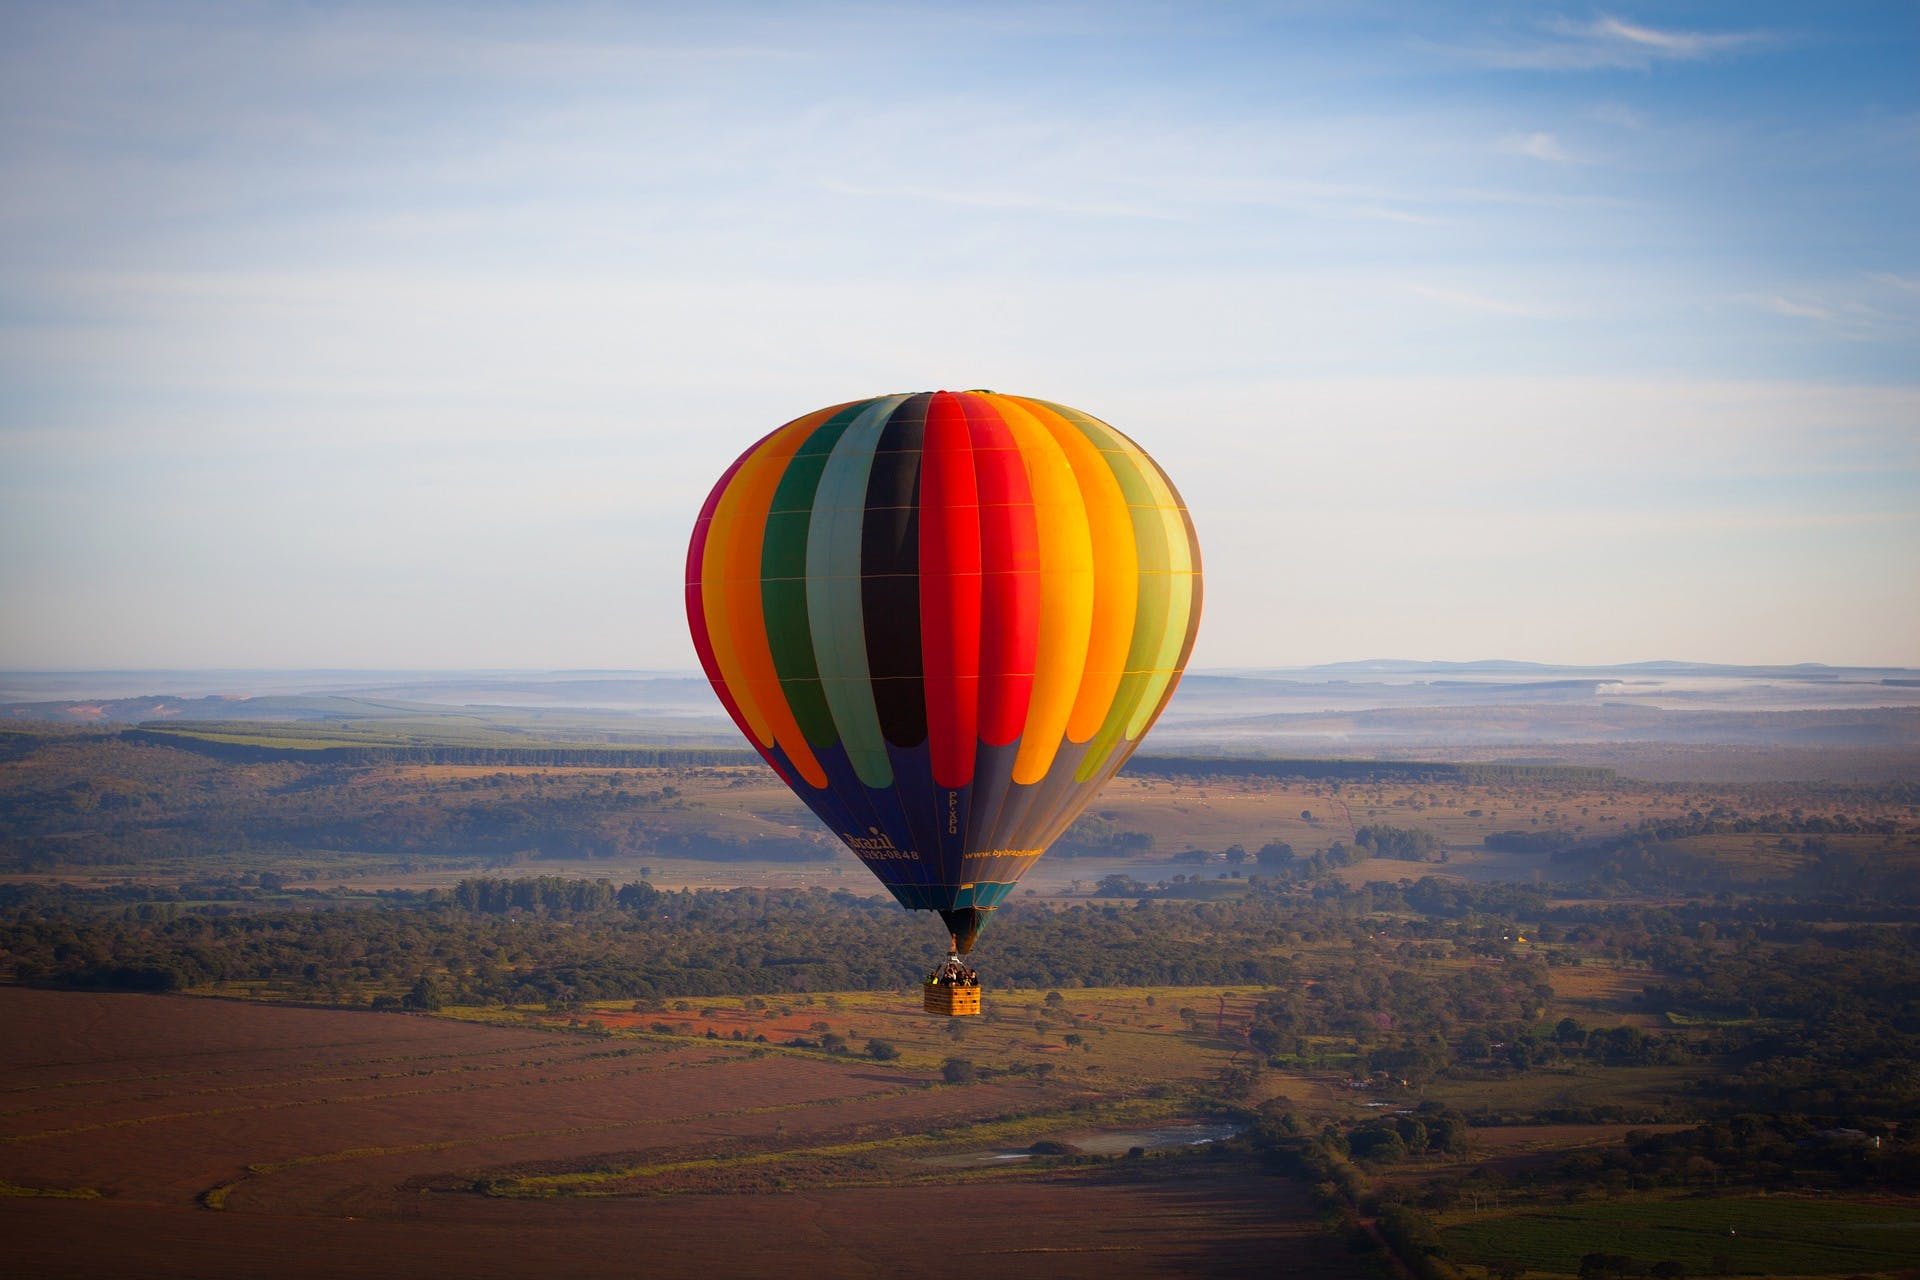 Hot air ballooning,Hot air balloon,Sky,Air sports,Air travel,Natural environment,Morning,Balloon,Vehicle,Atmosphere